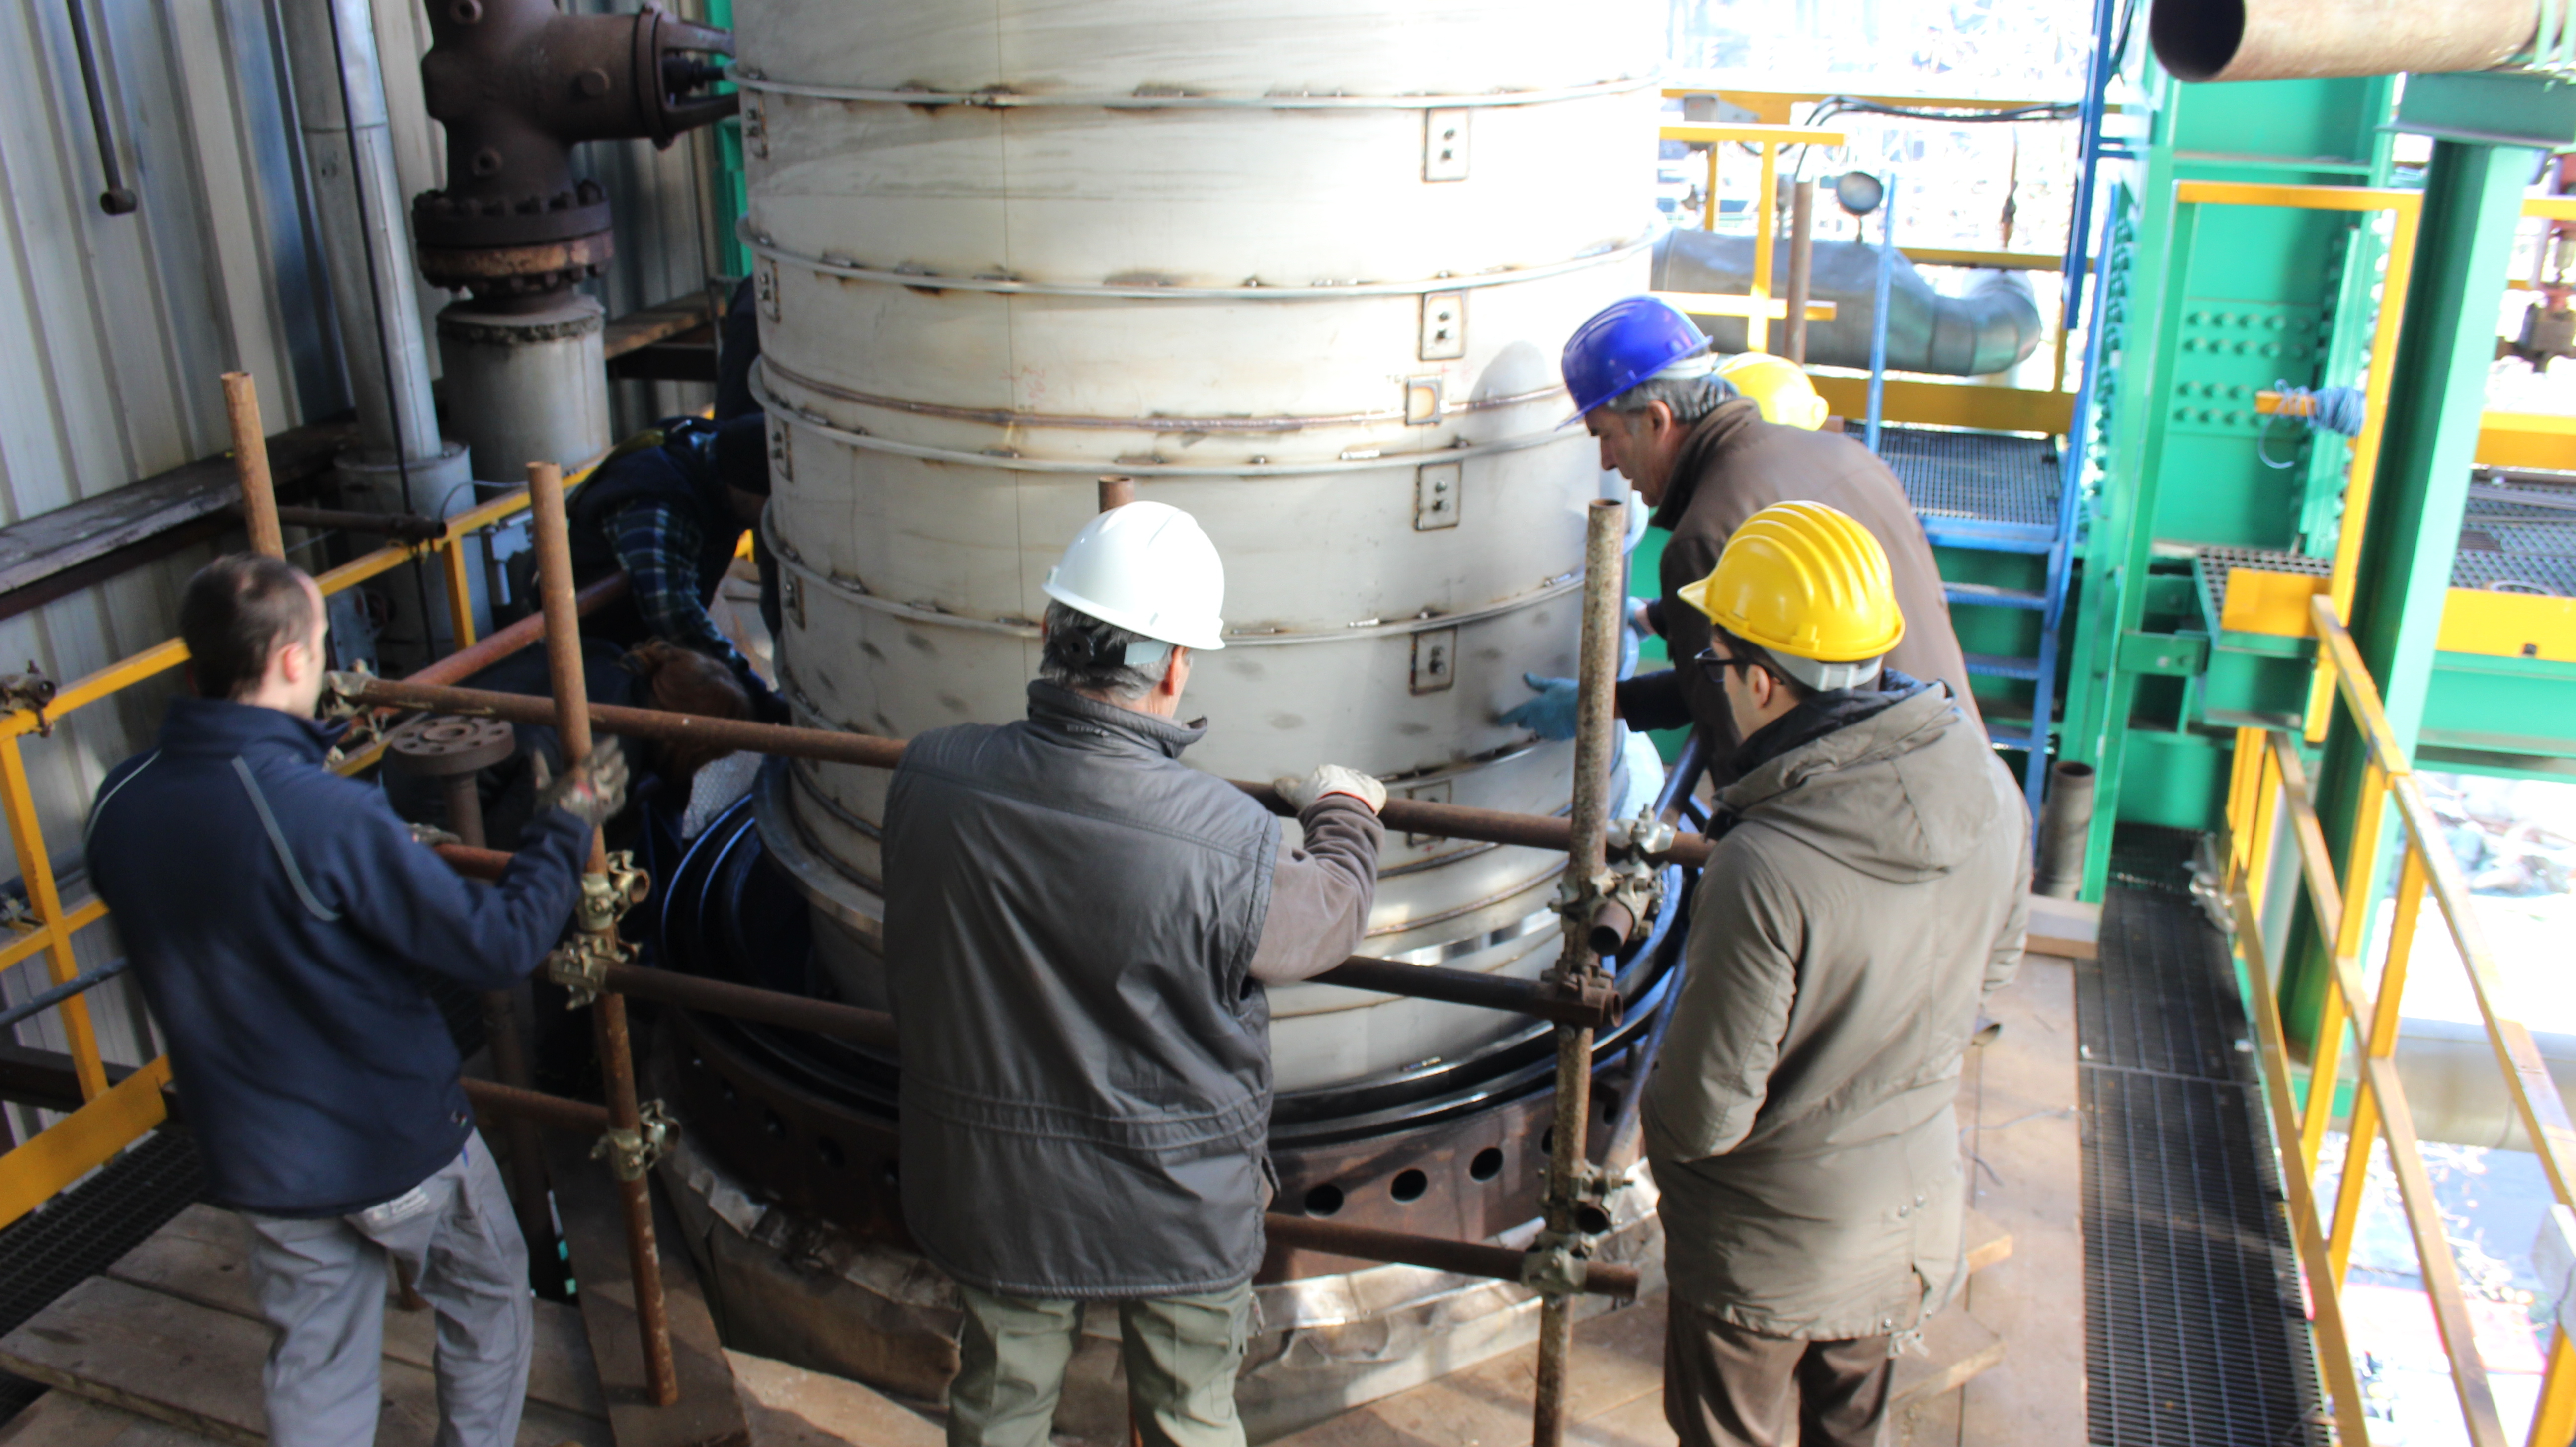 NuScale Power Successfully Installs Full Length Helical Coil Steam